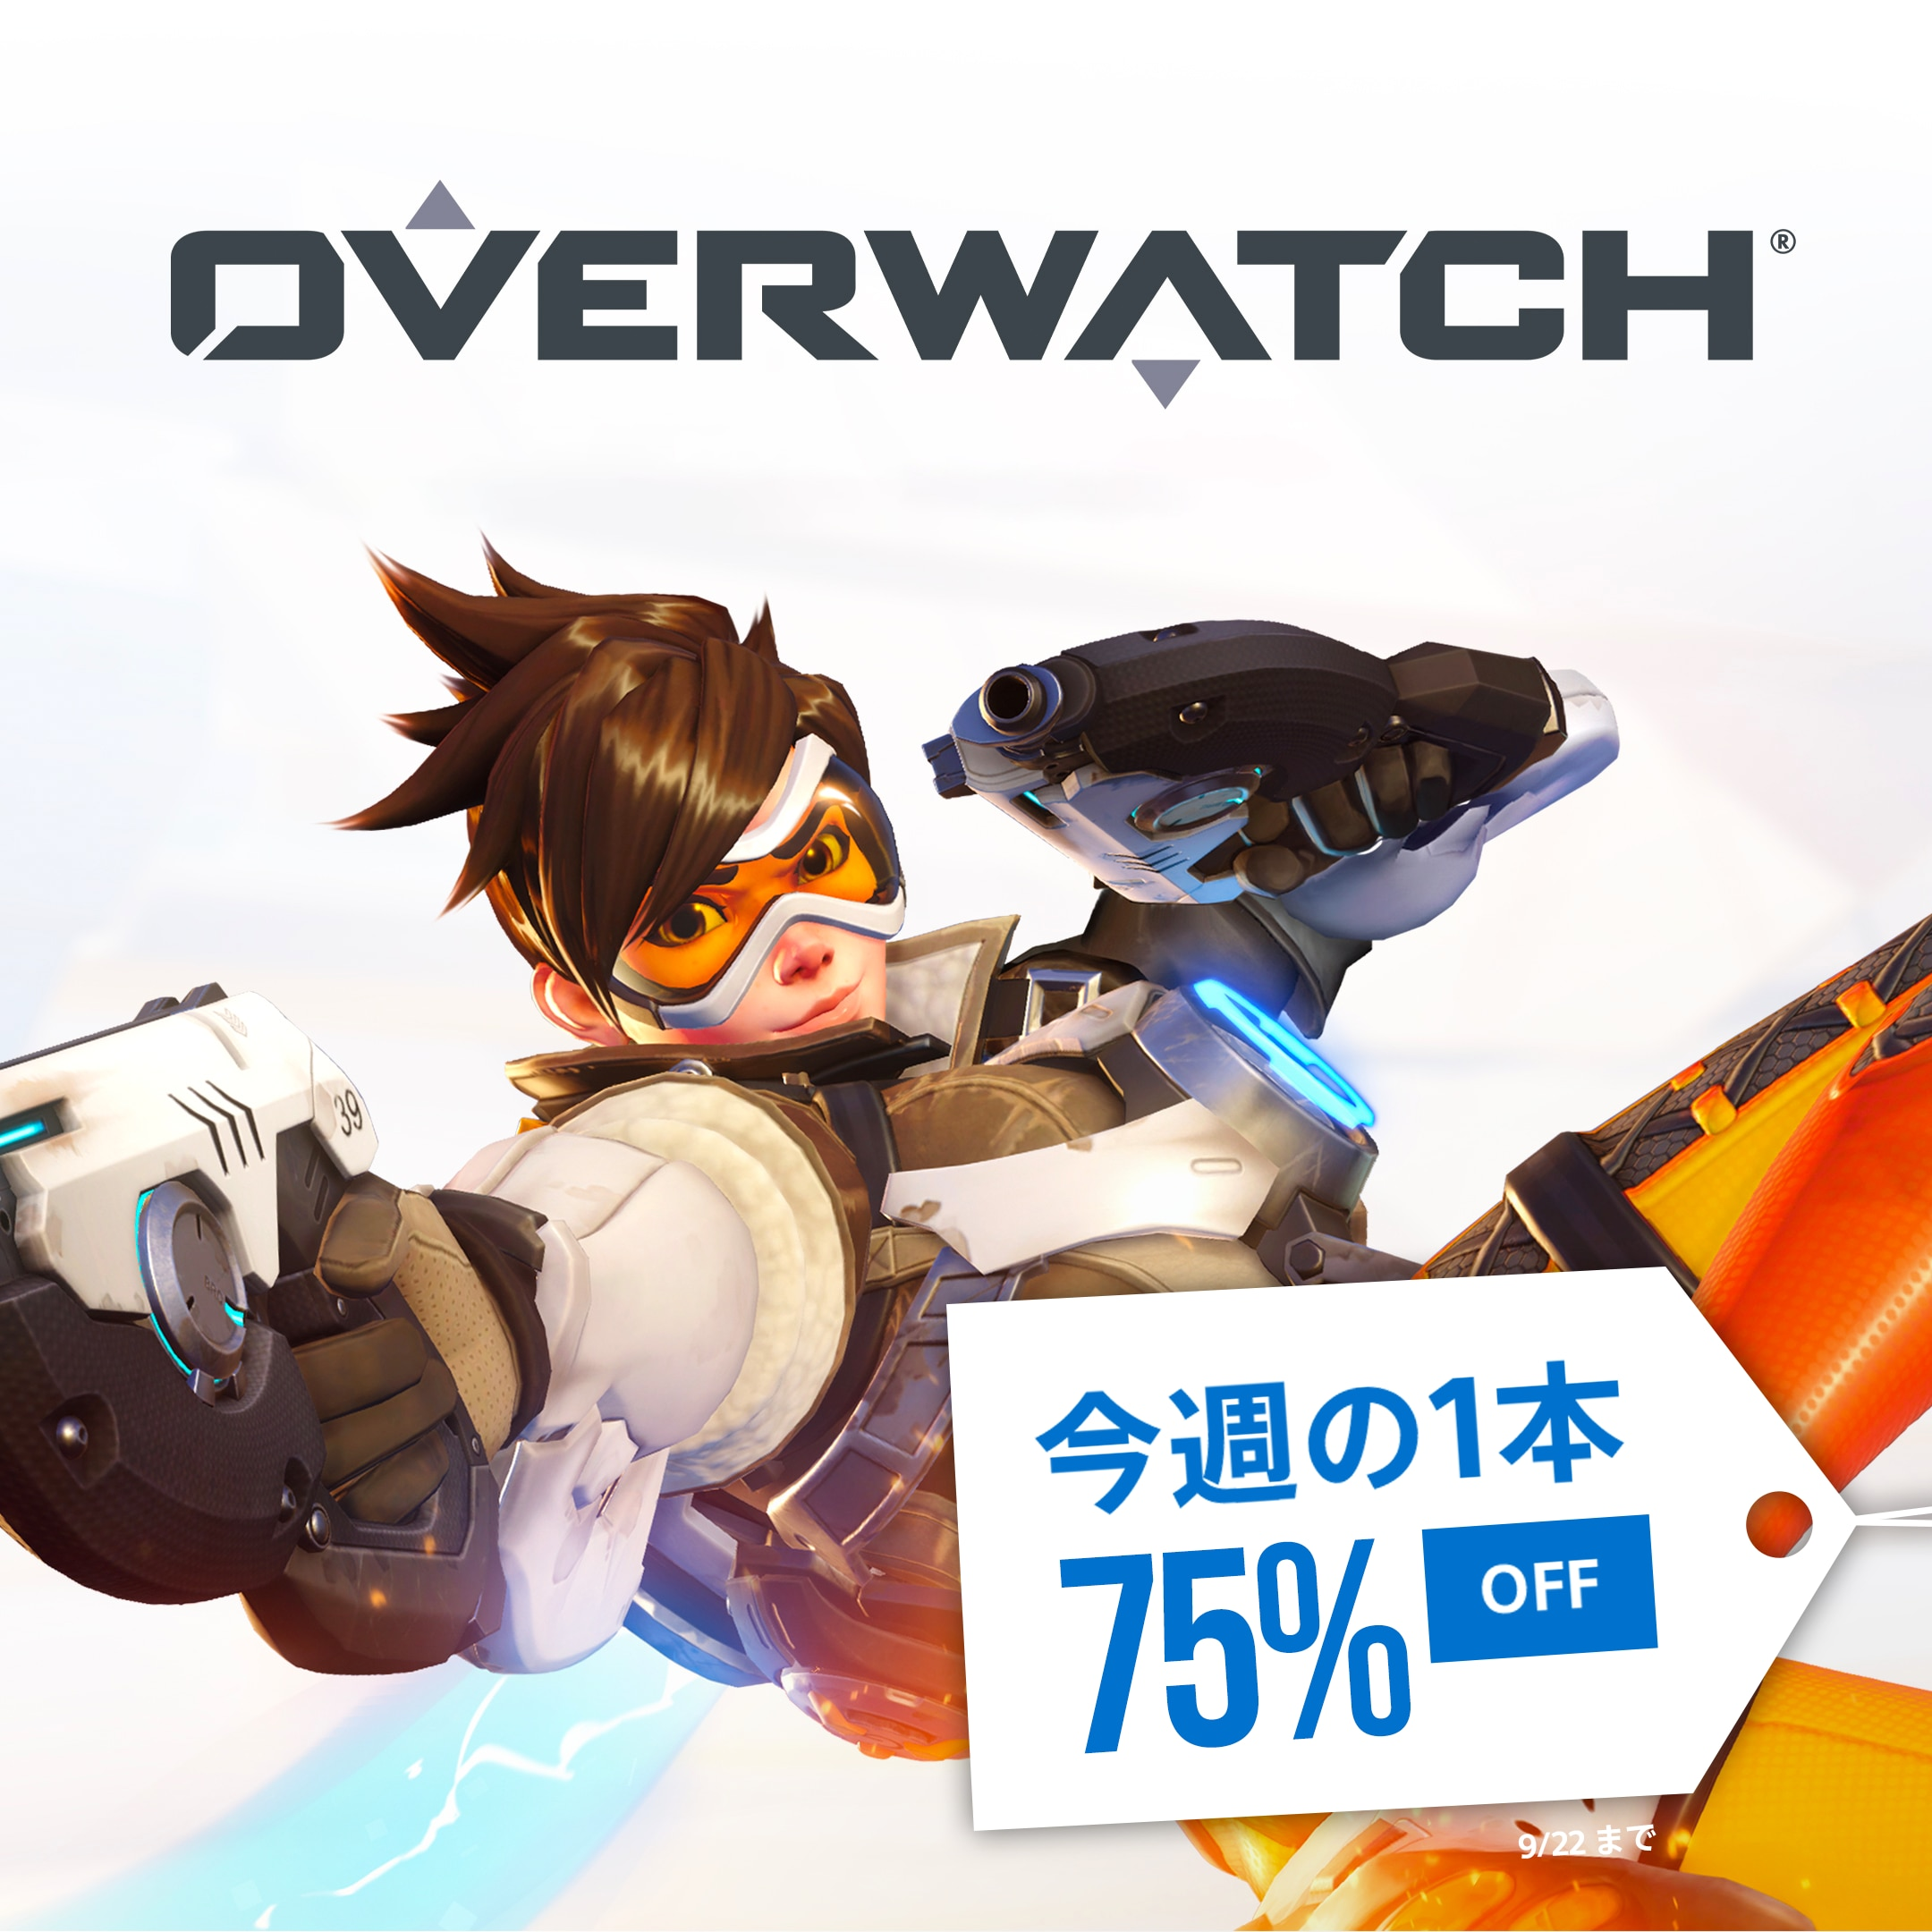 [PROMO] Deal Of The Week Overwatch